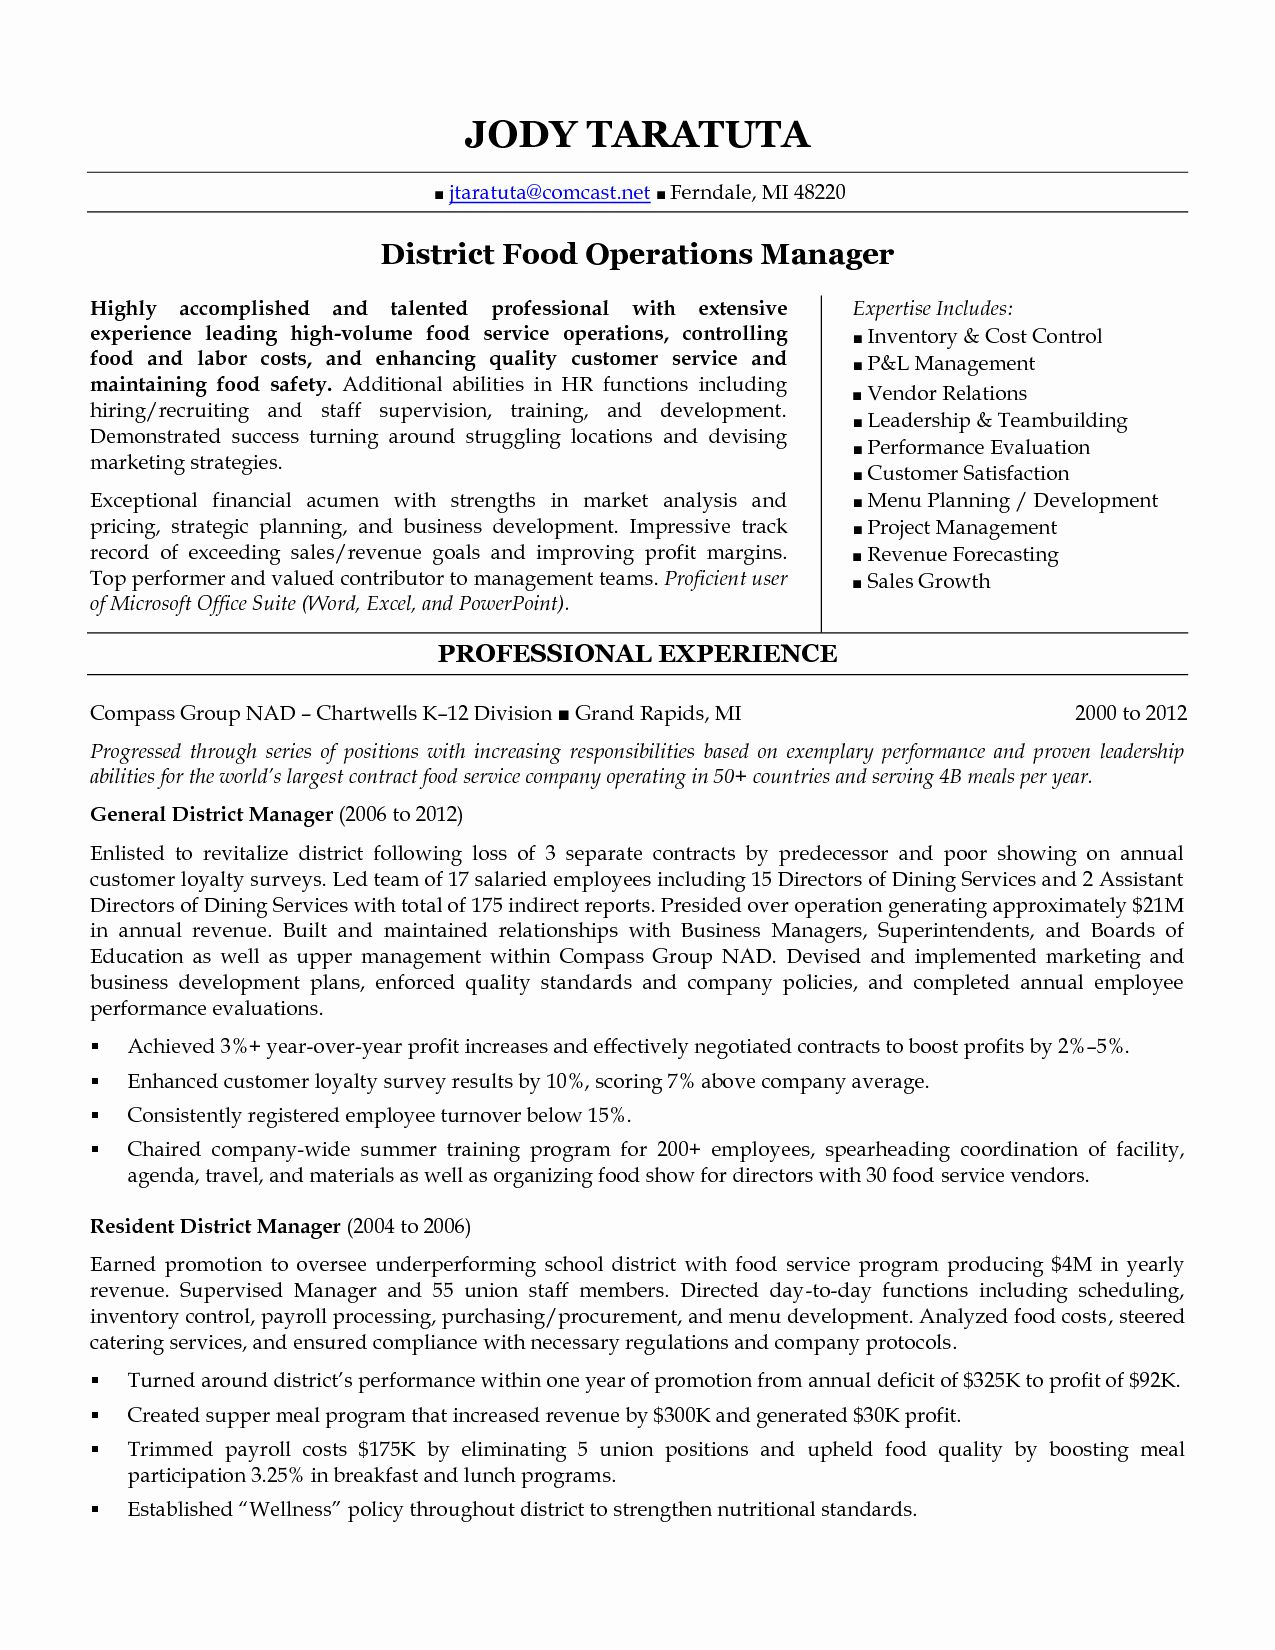 A Professional Resume Template For An Operations And Management Executive Want It Download It Now Executive Resume Template Executive Resume Resume Templates